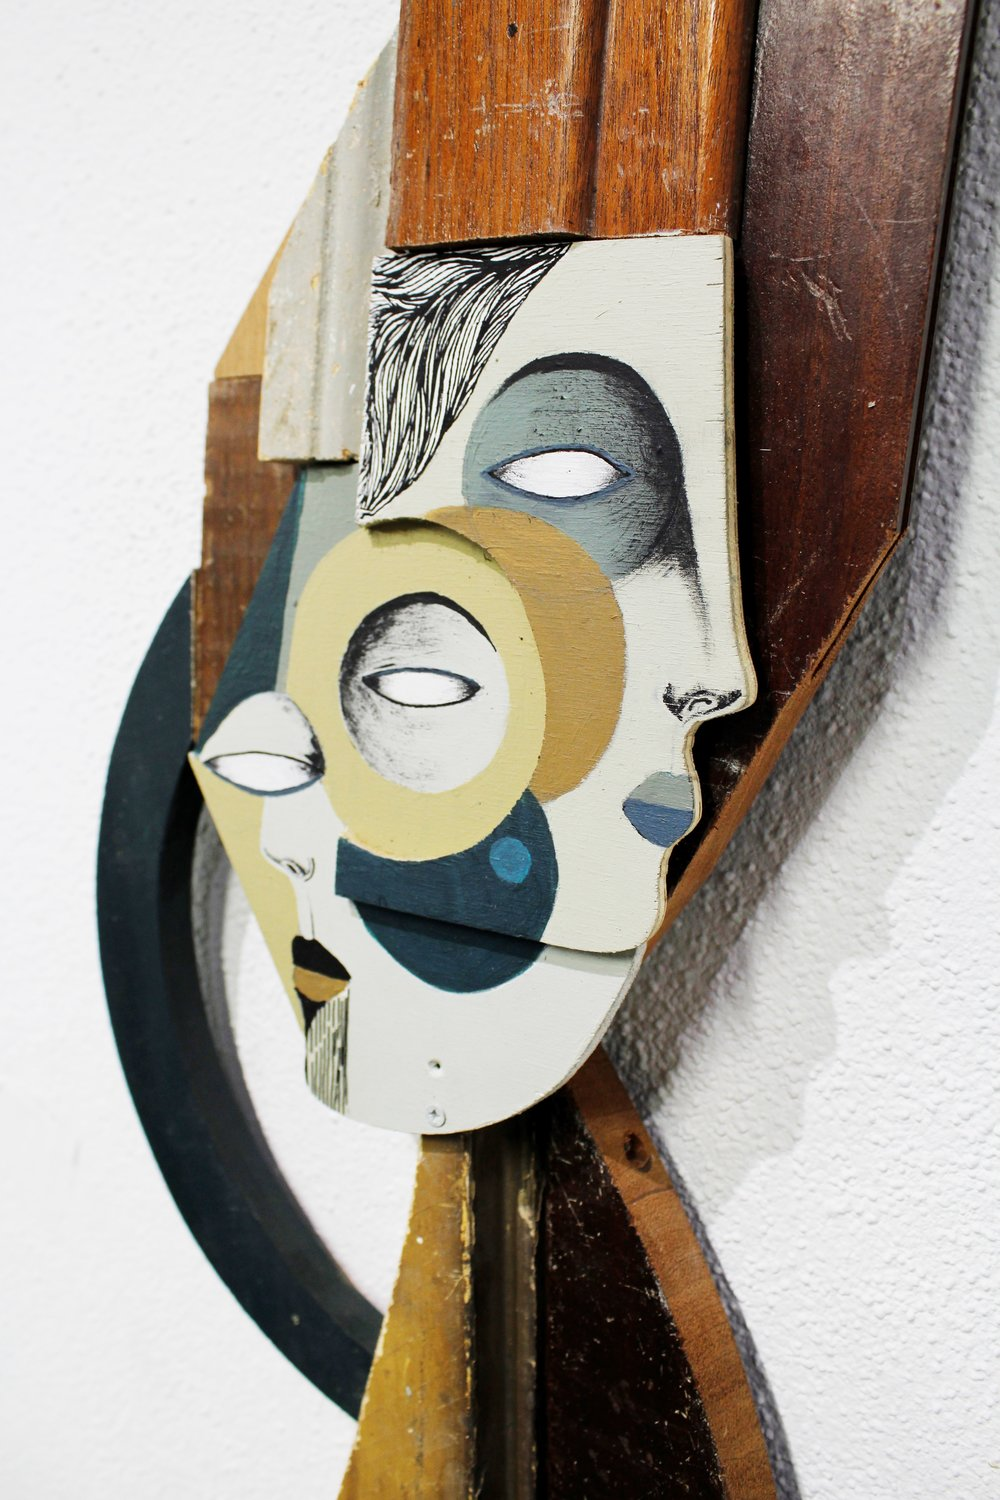 detail: acrylic and reclaimed wood assemblage